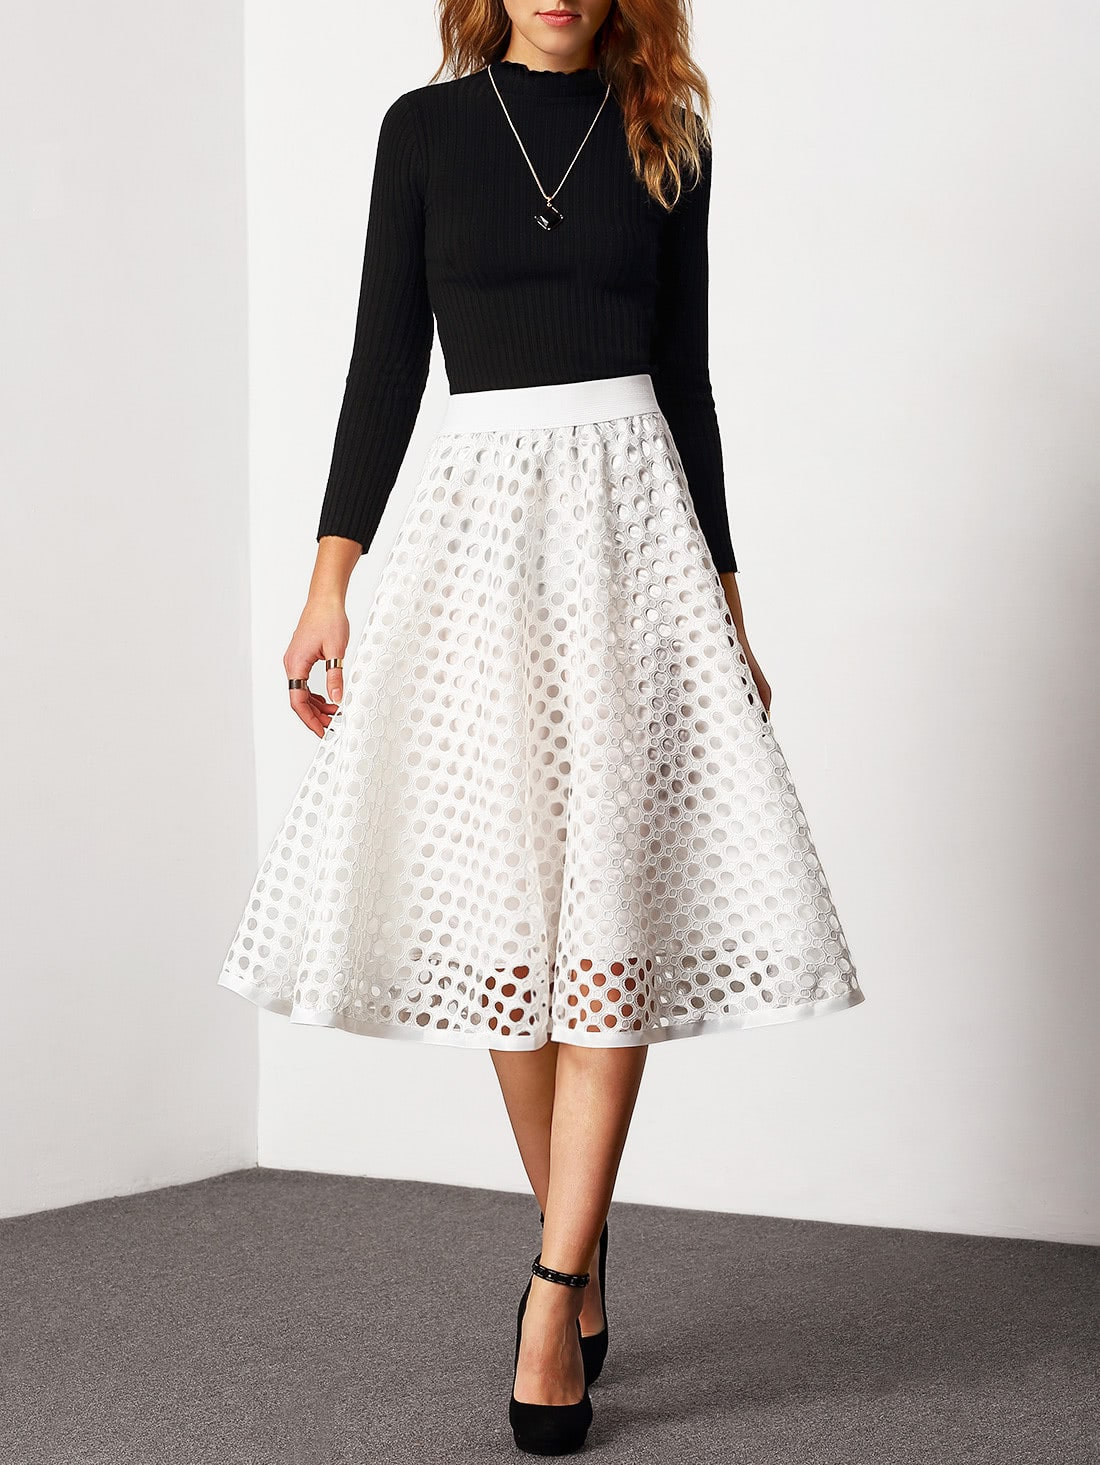 High Waist Eyelet Circle Skirt -SheIn(Sheinside)